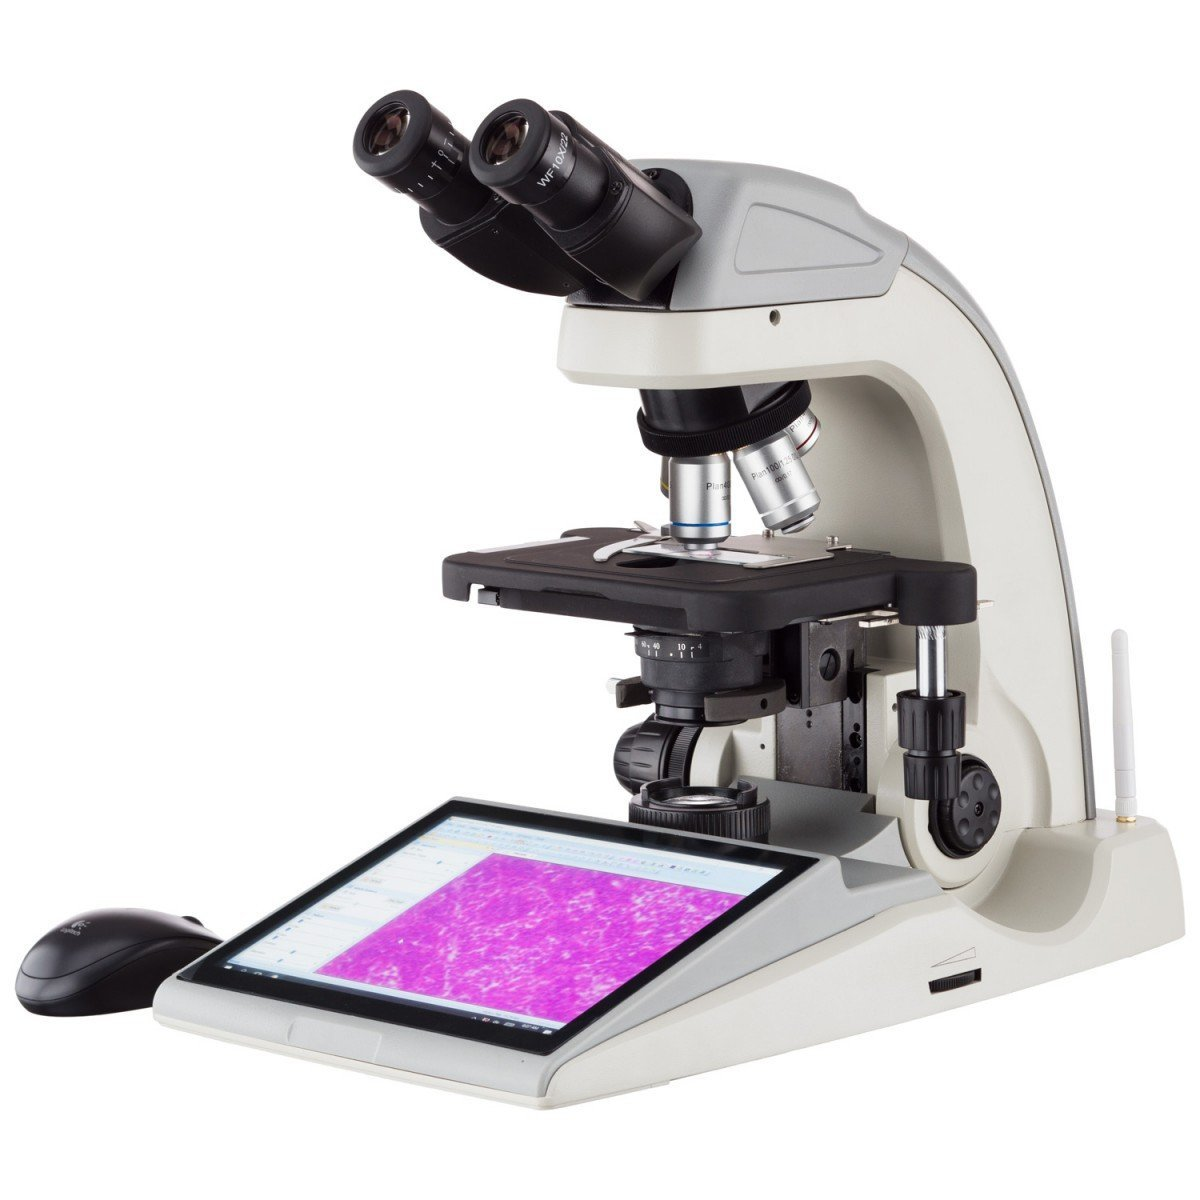 40X-1000X Research Compound Microscope with Integrated 16MP Digital Imaging System